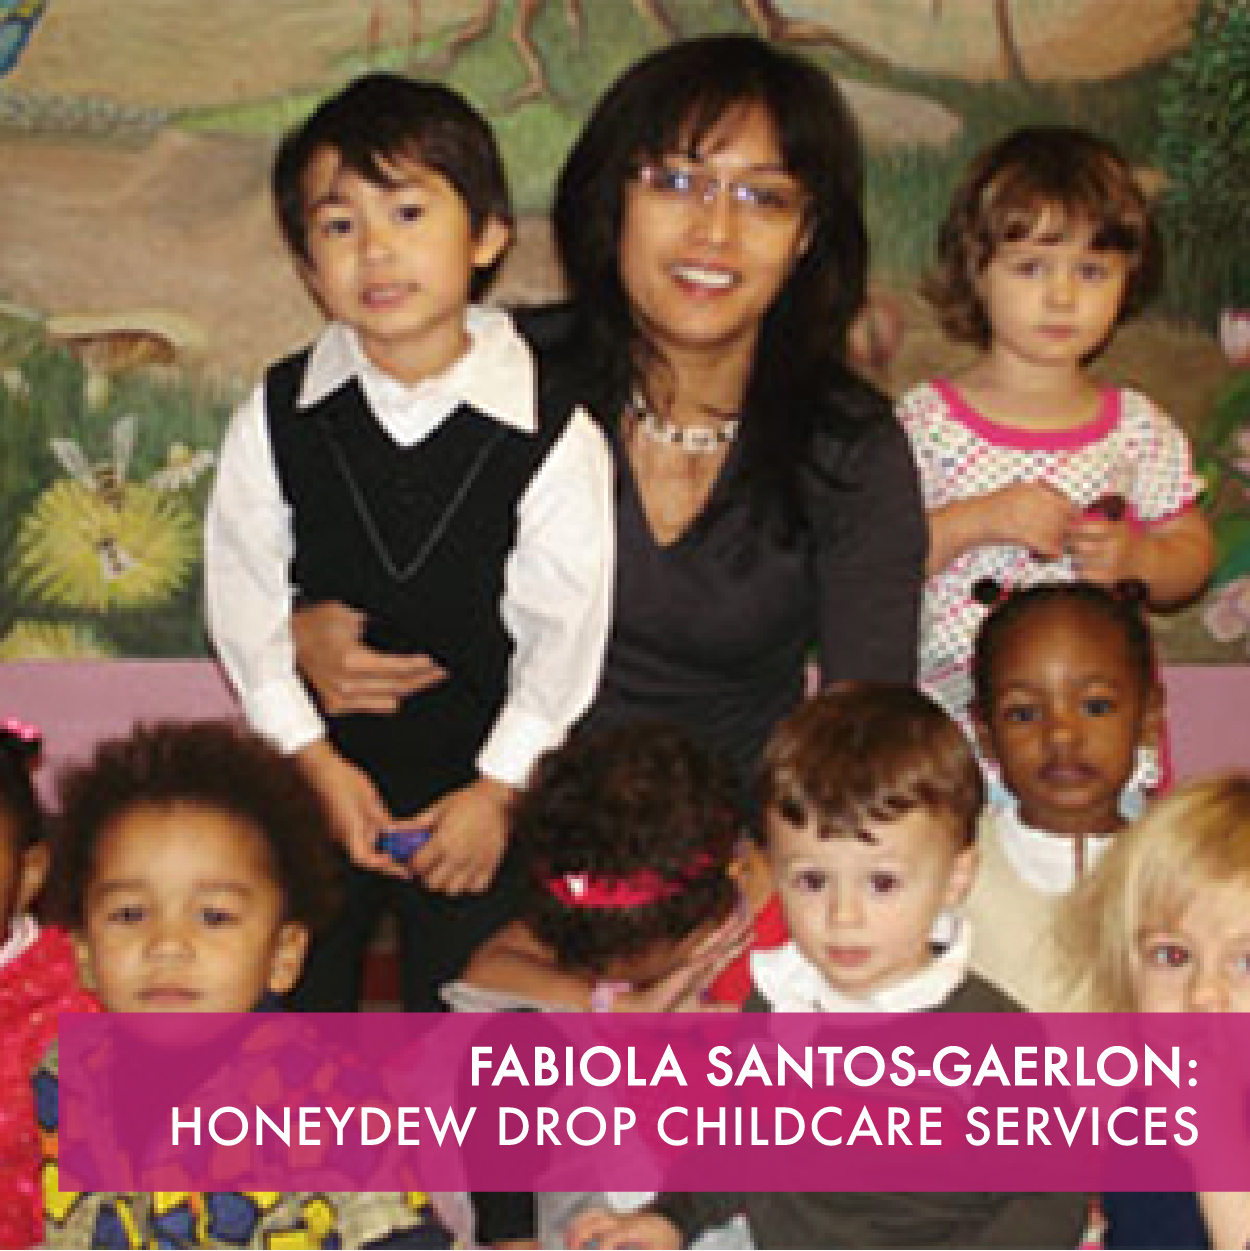 We care for children from ages 4 months to 5 years old. Our mission is to provide high quality childcare, parental support and leadership training for childcare providers.